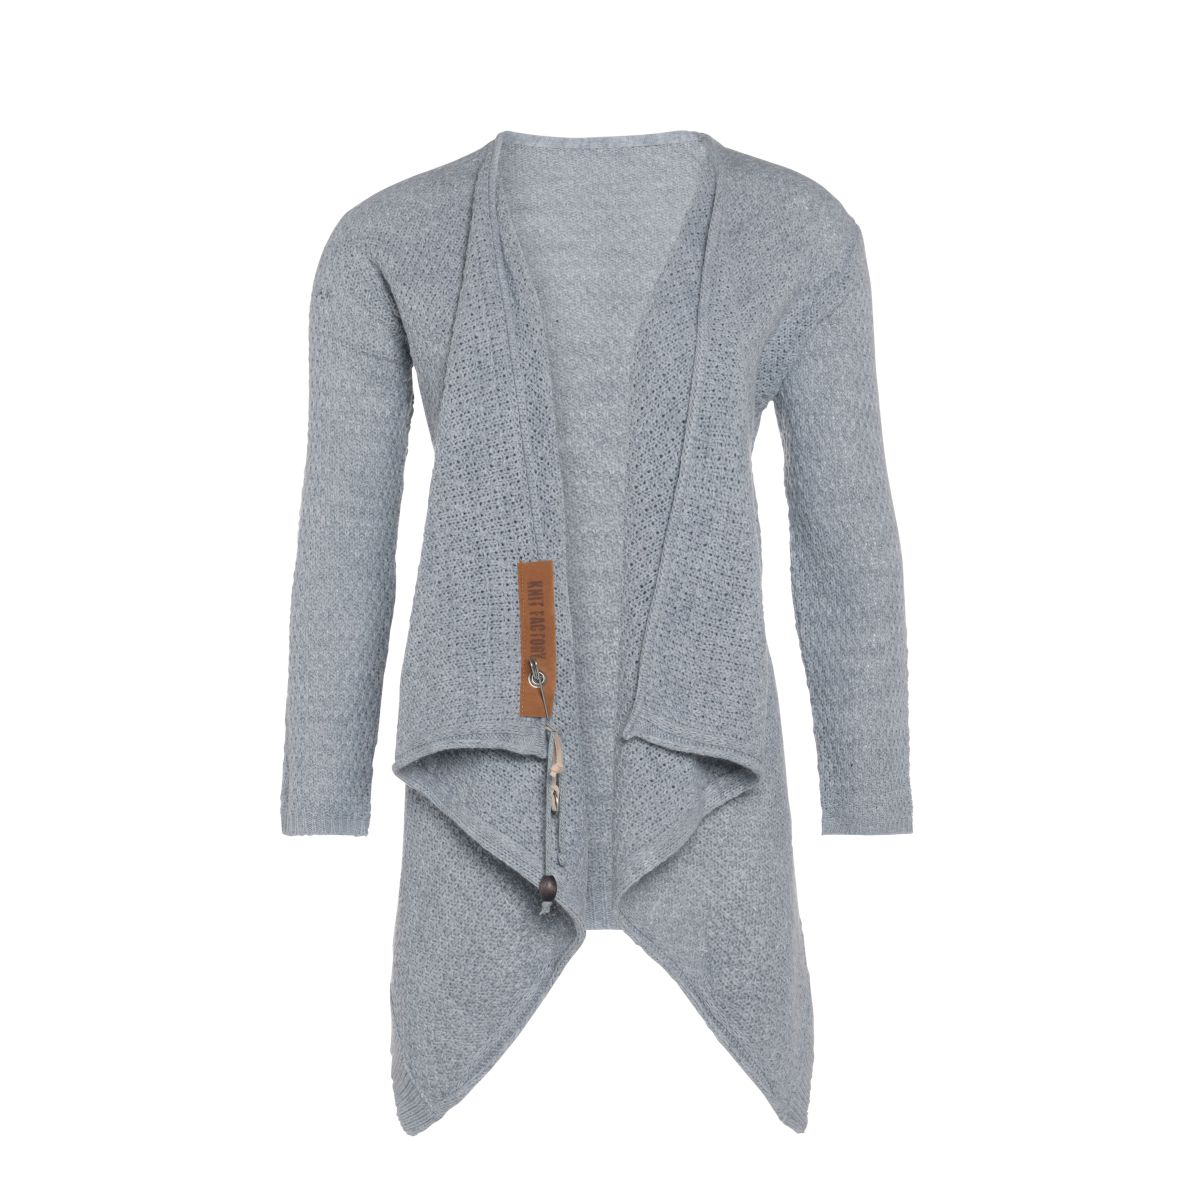 emy knitted cardigan light grey 3638